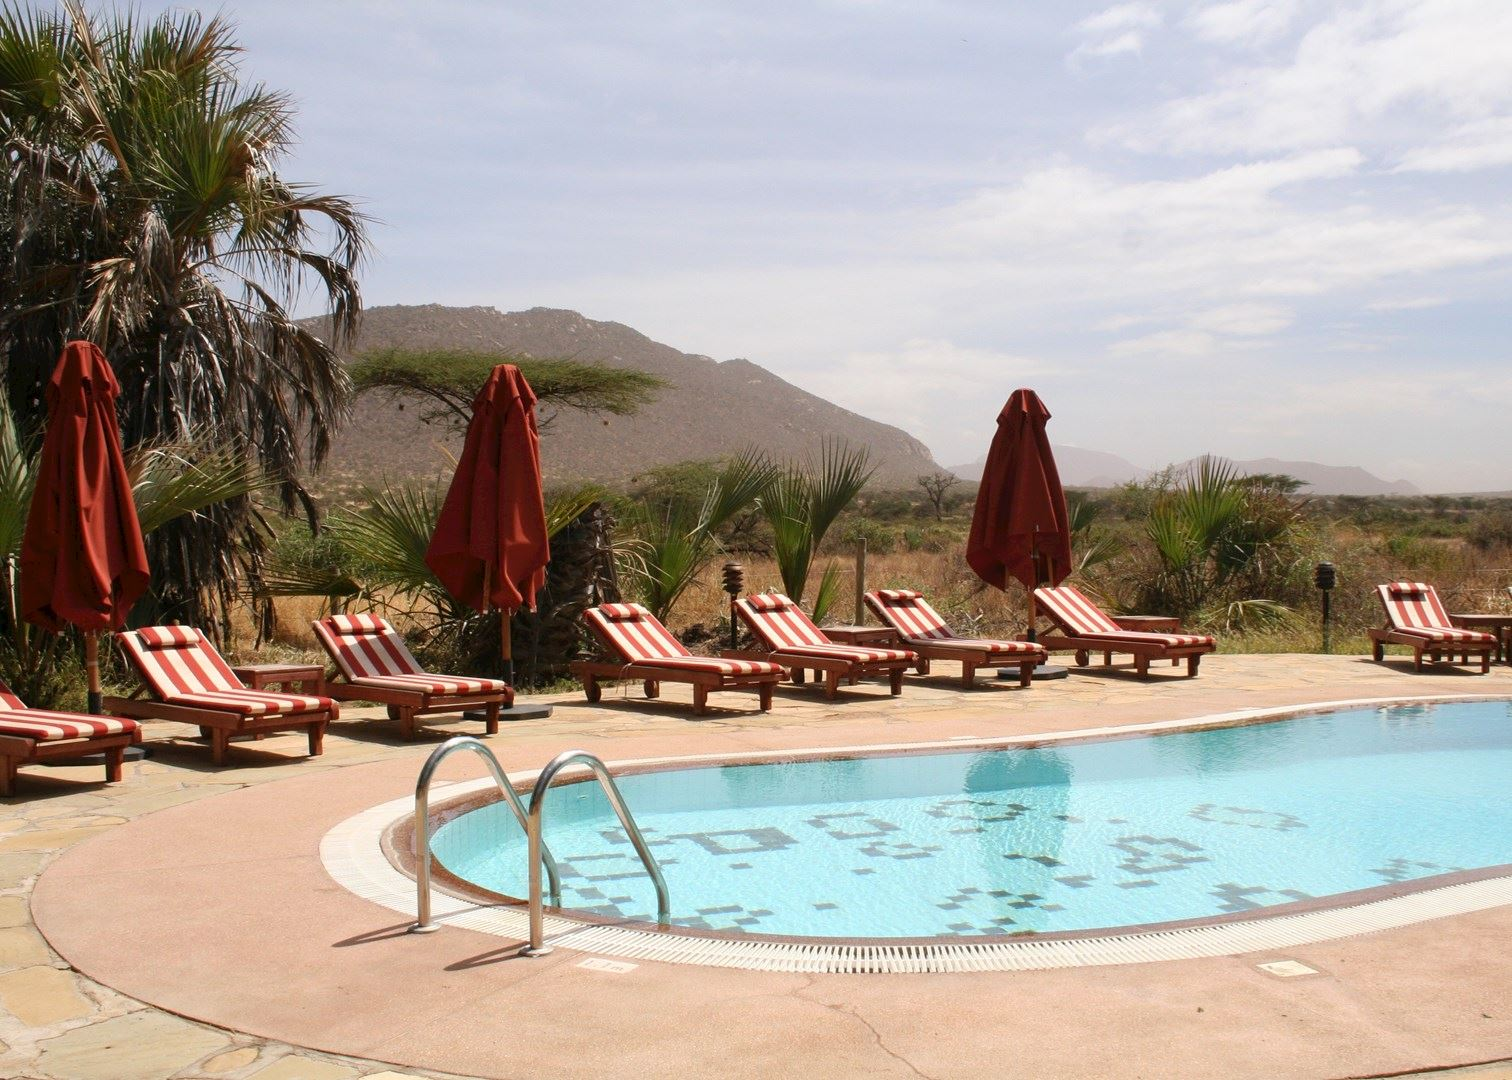 Larsens Camp, Samburu National Reserve